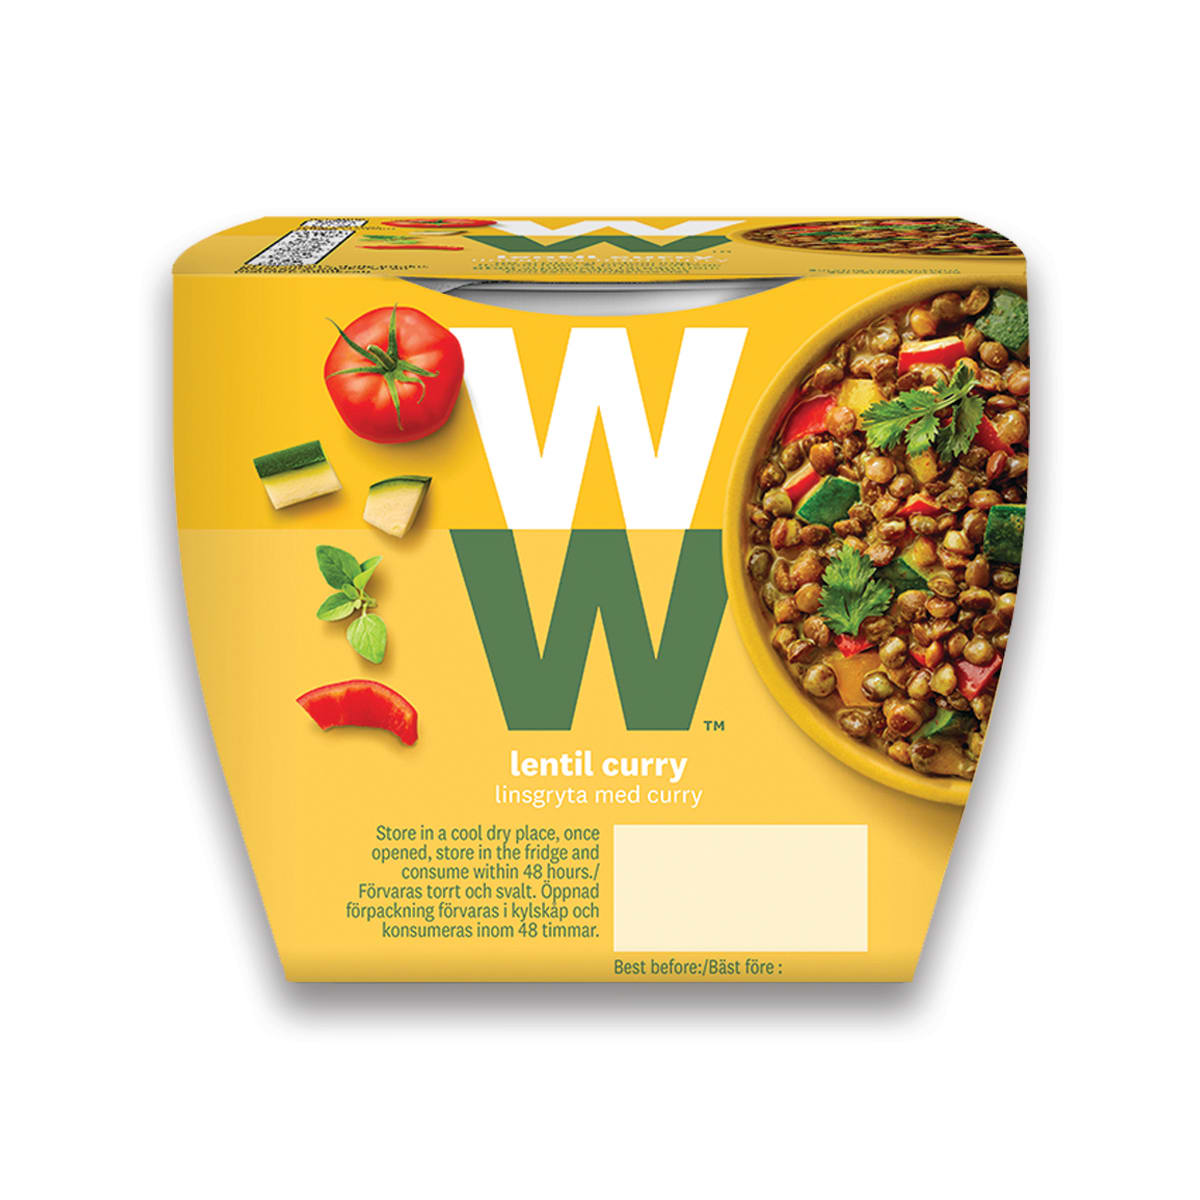 WW Lentil Curry, delicious with rice or on a jacket potato, quick and easy, high in protein, 2 minutes to cook, suitable for vegans